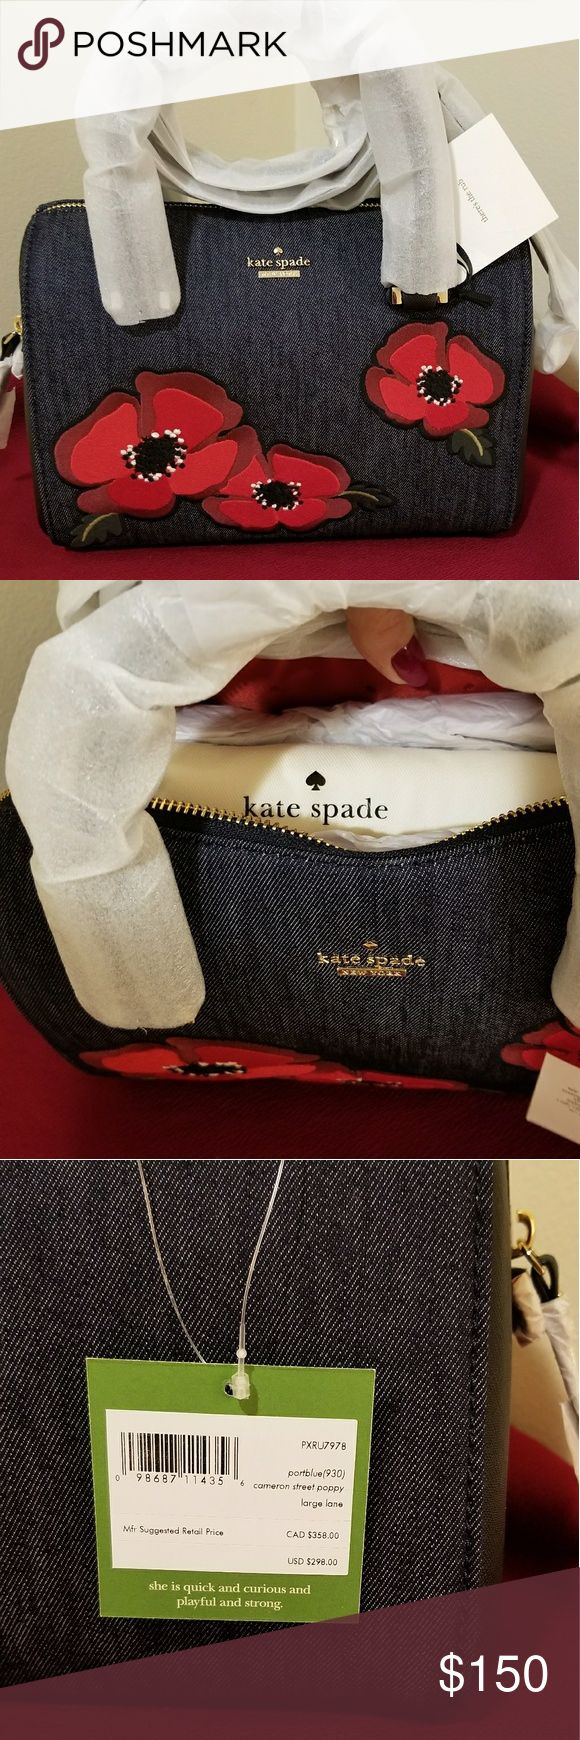 """KATE SPADE 2017 Cameron Street Poppy Satchel Brand new with tags - 2017 Large Lane Cameron Street Poppy satchel. Comes in original packaging and includes original Kate Spade dust bag inside. Original price $298.00. Gorgeous purse, perfect for Spring! Great gift for someone you love or for yourself :) Please message me if you have any questions!  SIZE  -10.5 w x 6.9 h x 4.5 d -3.6"""" leather handle, 20"""" adjustable leather strap  MATERIAL  -denim with leather trim   DETAILS  -satchel with ziptop…"""